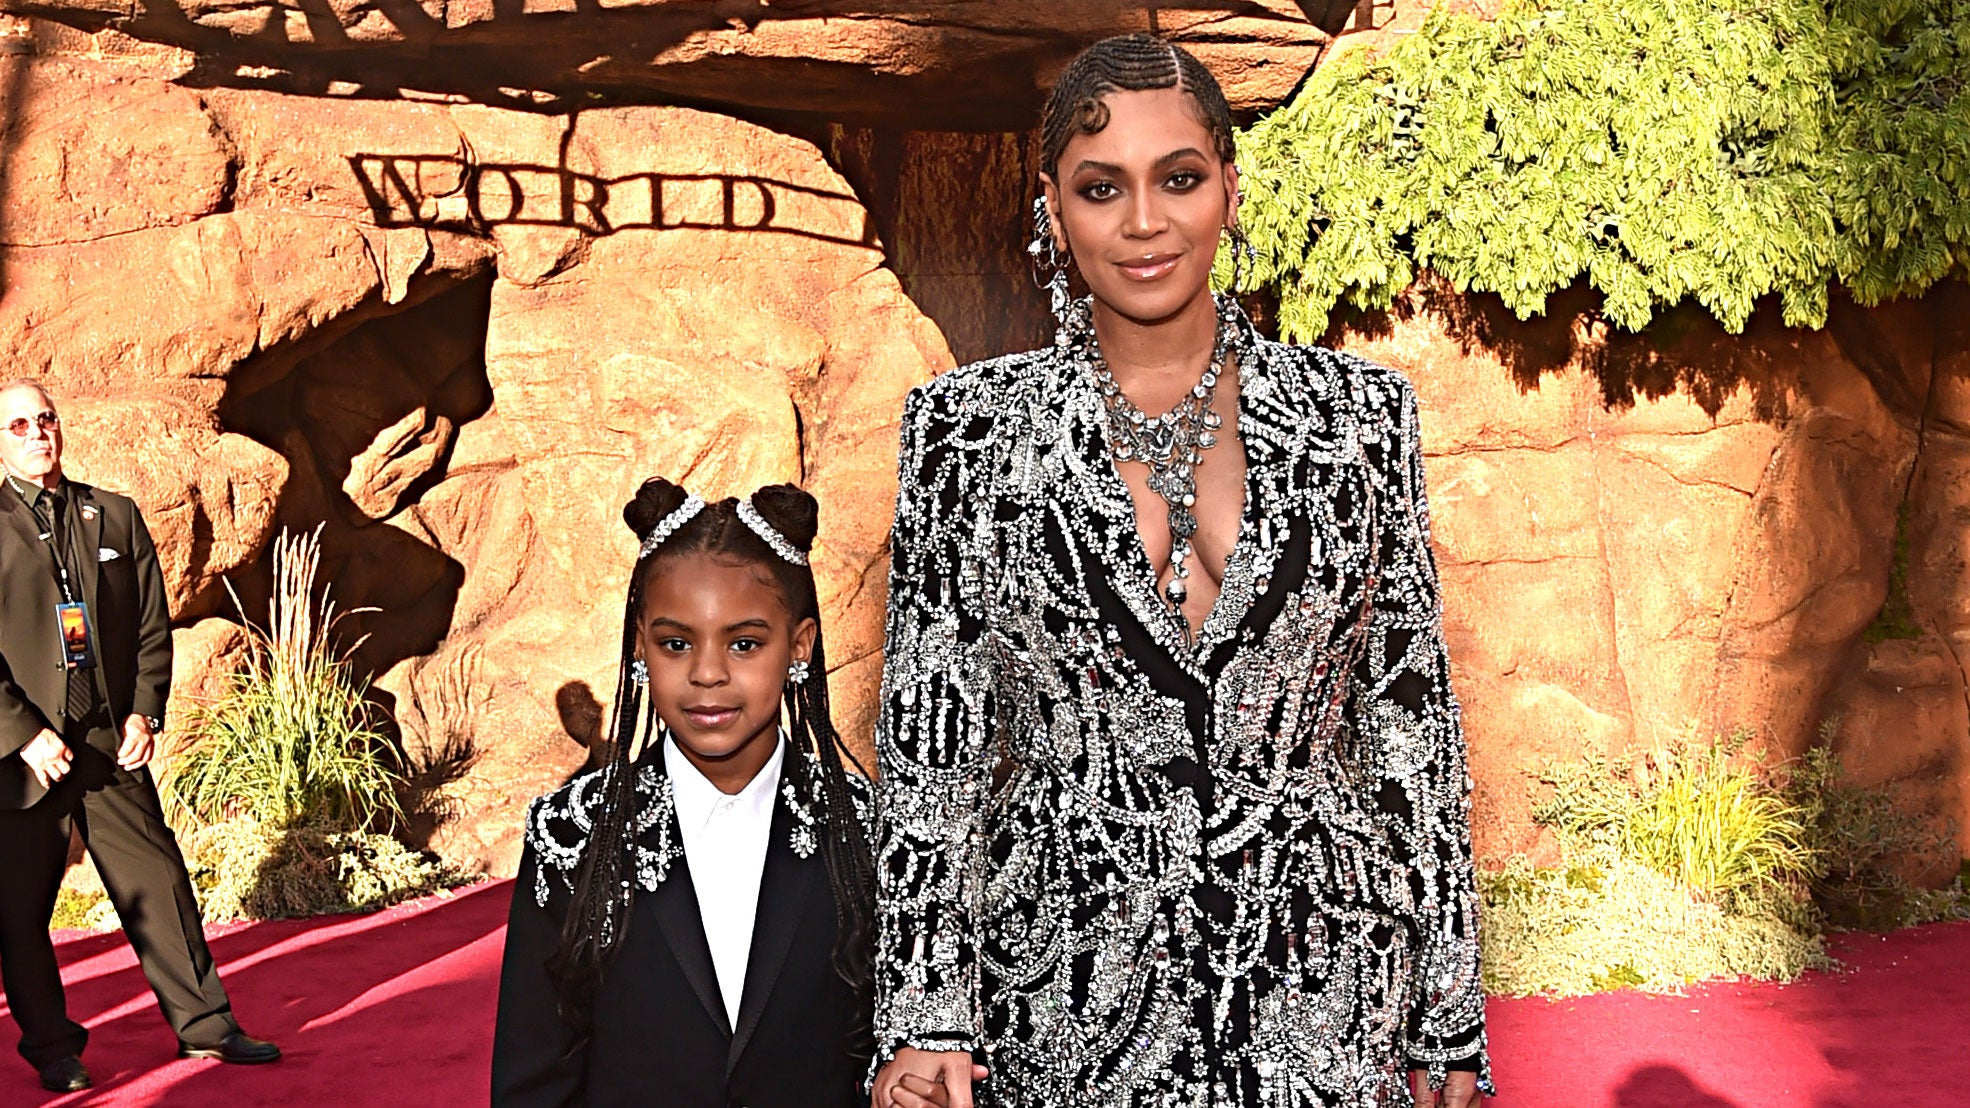 Wondrous Blue Ivy Is A Total Cutie In New Photo To Celebrate Her 8Th Funny Birthday Cards Online Kookostrdamsfinfo